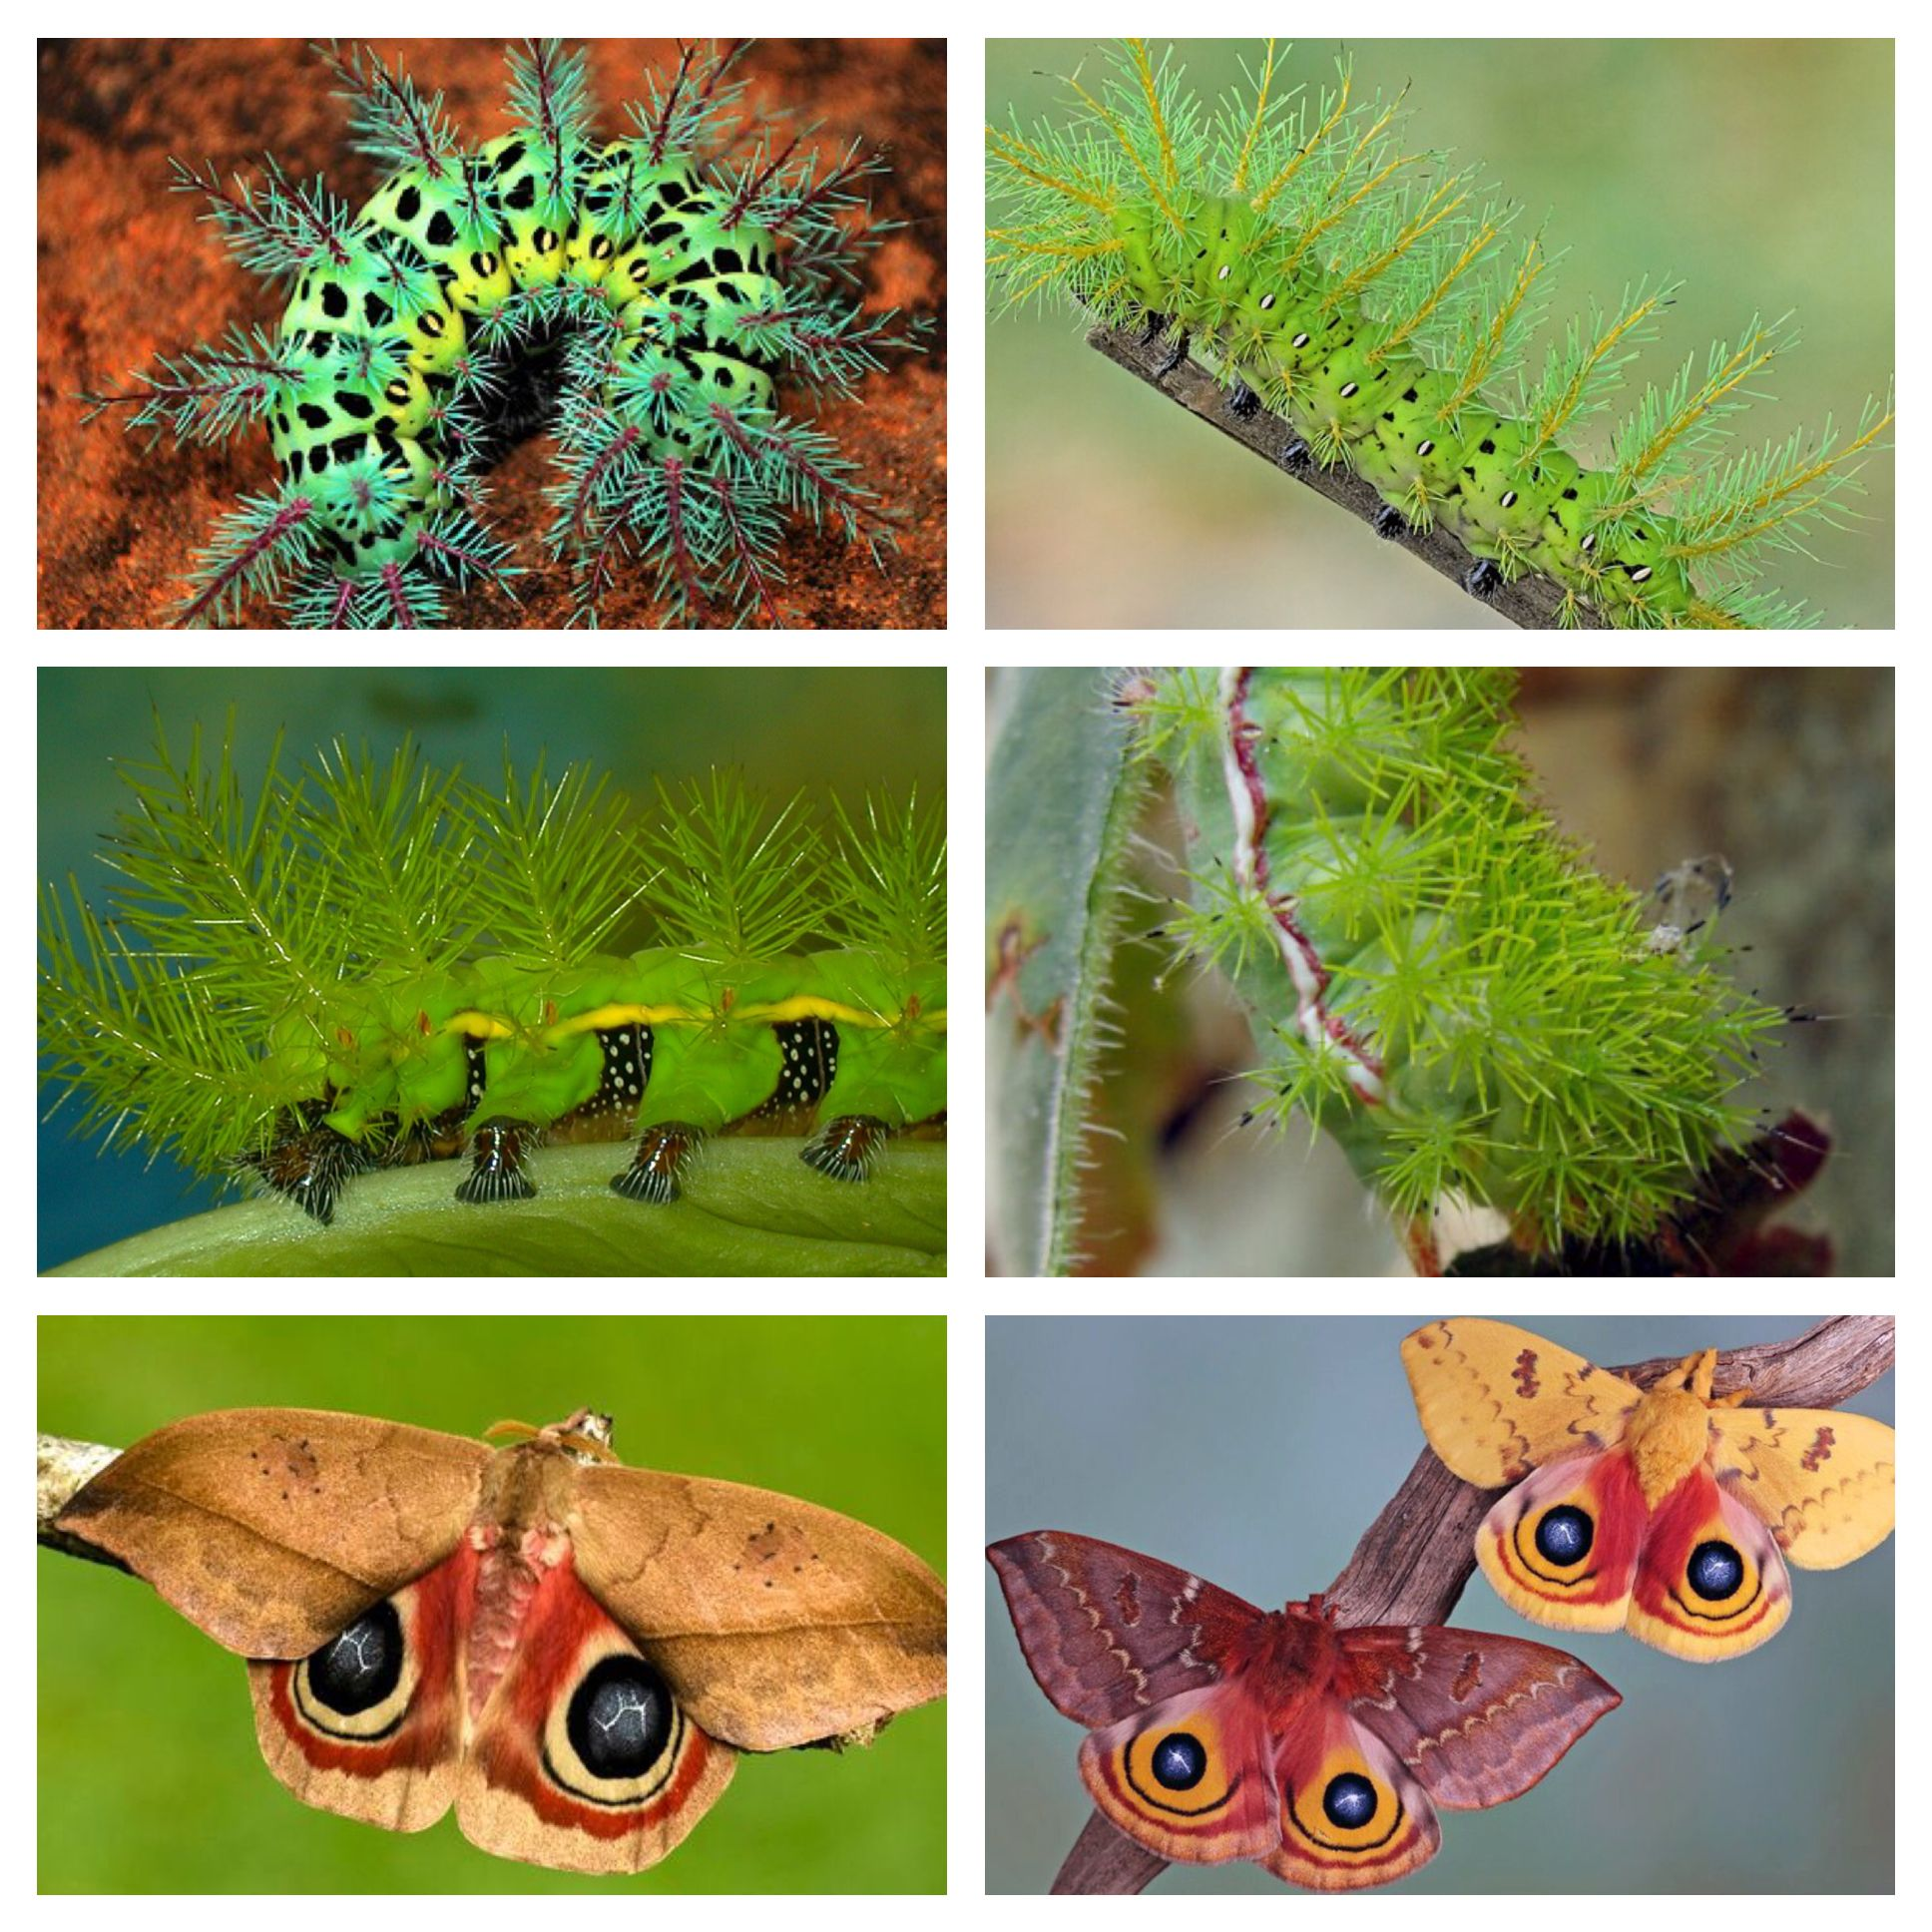 Automeris metzli is a moth of the Saturniidae family. It